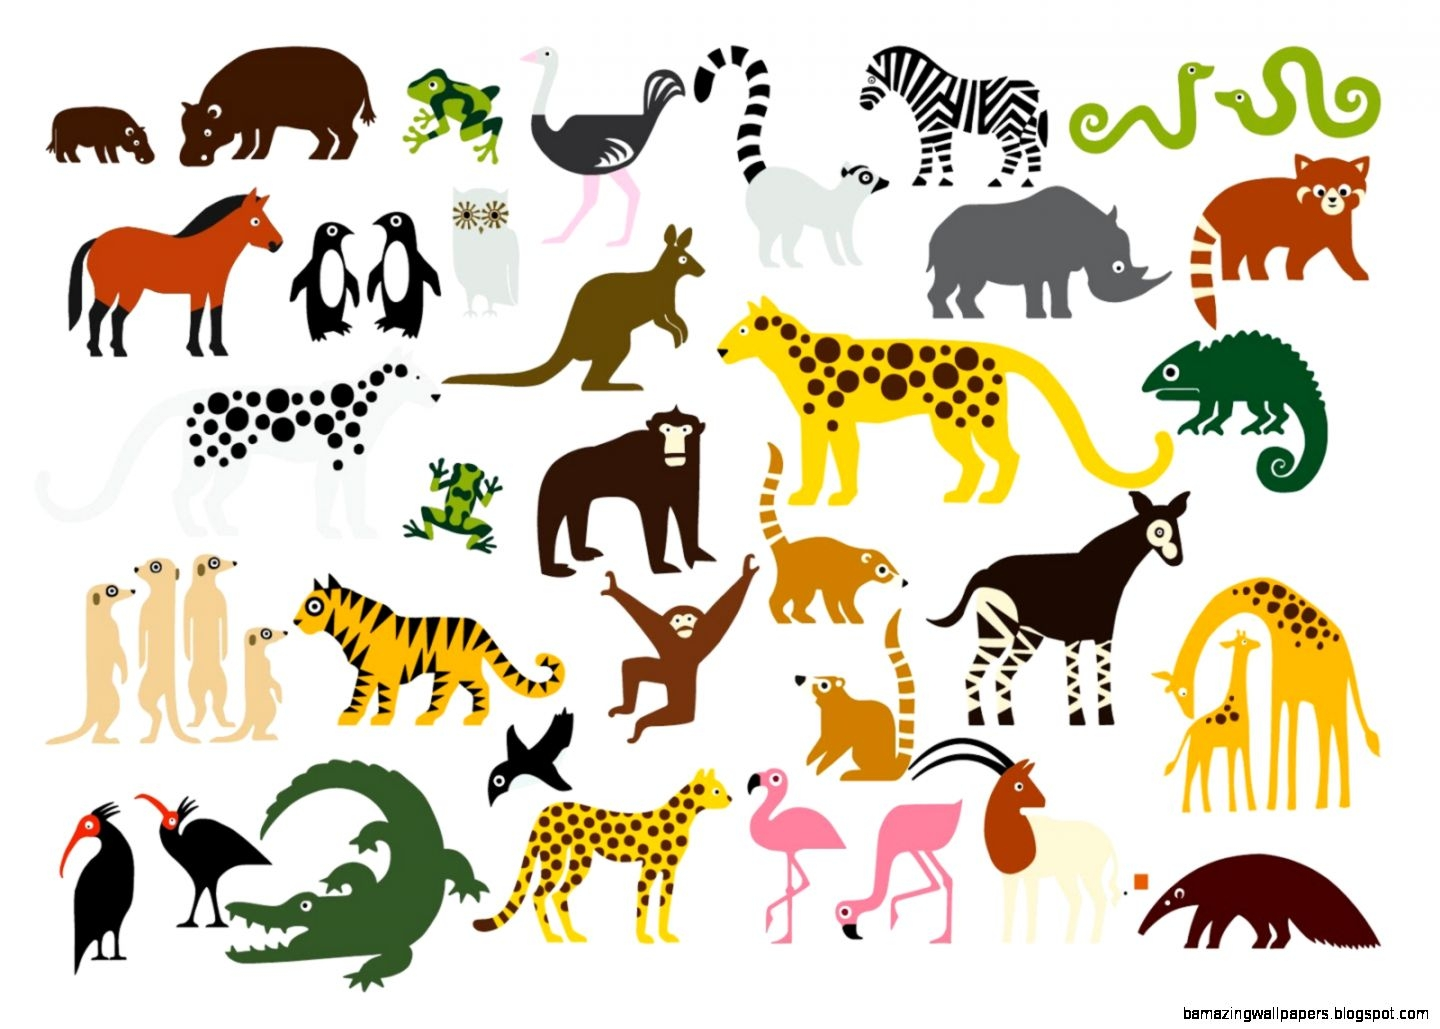 Zoo Animals Clipart - .-Zoo Animals Clipart - .-6